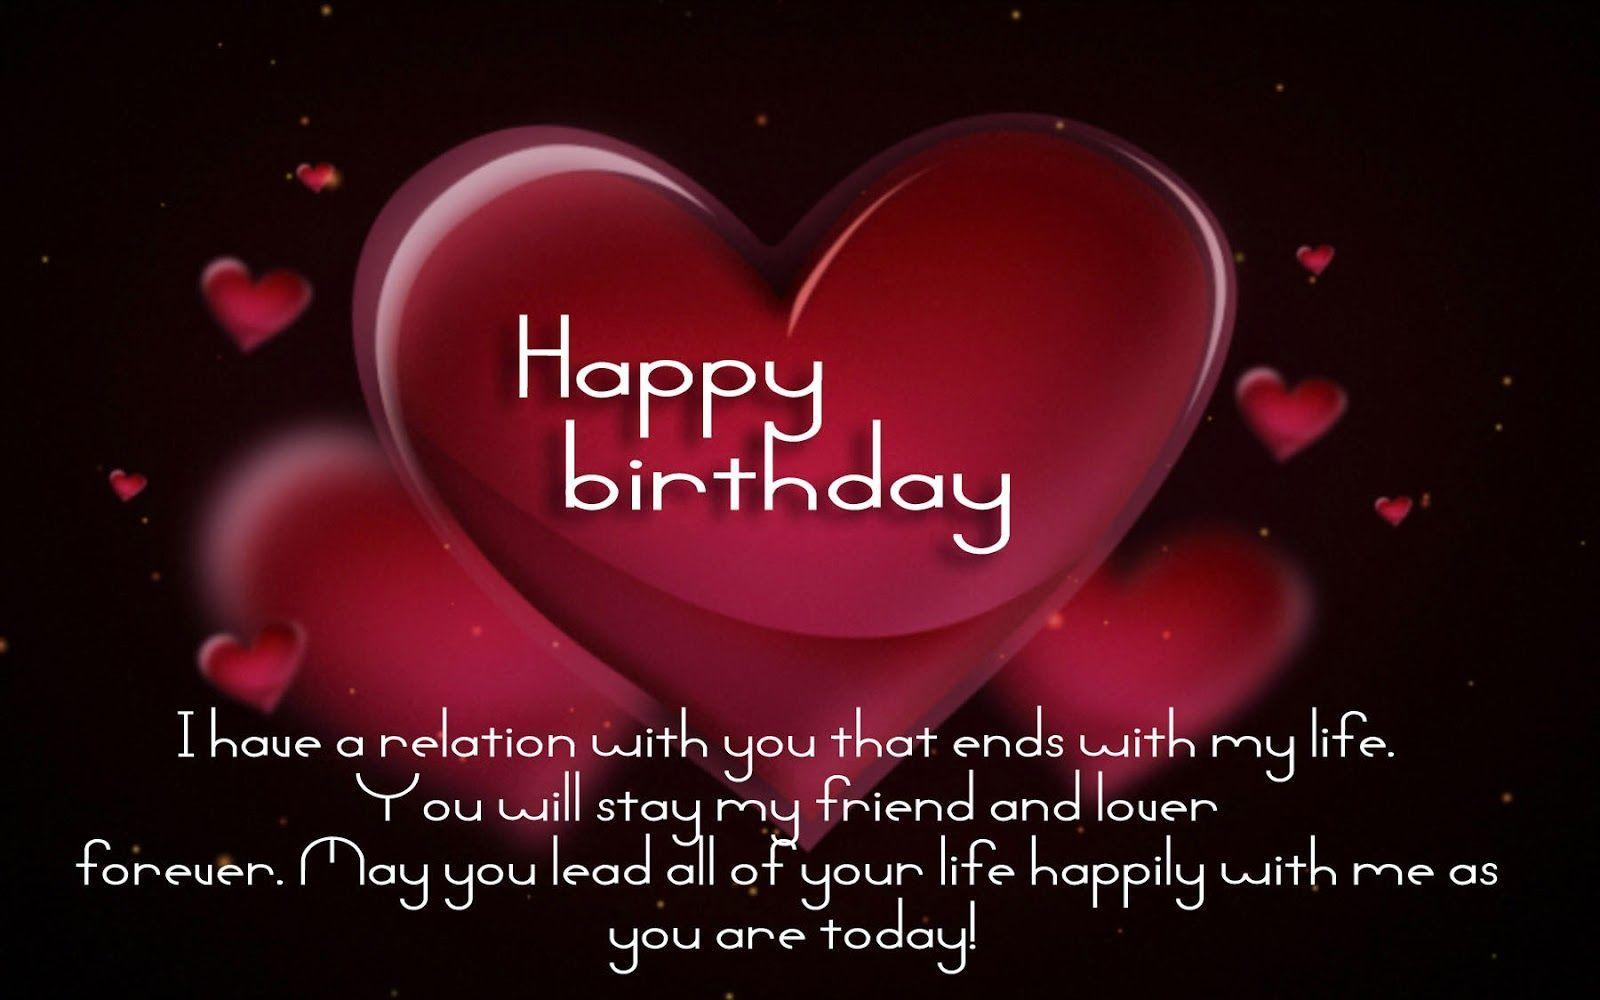 Happy Birthday love quotes, image, poems, messages